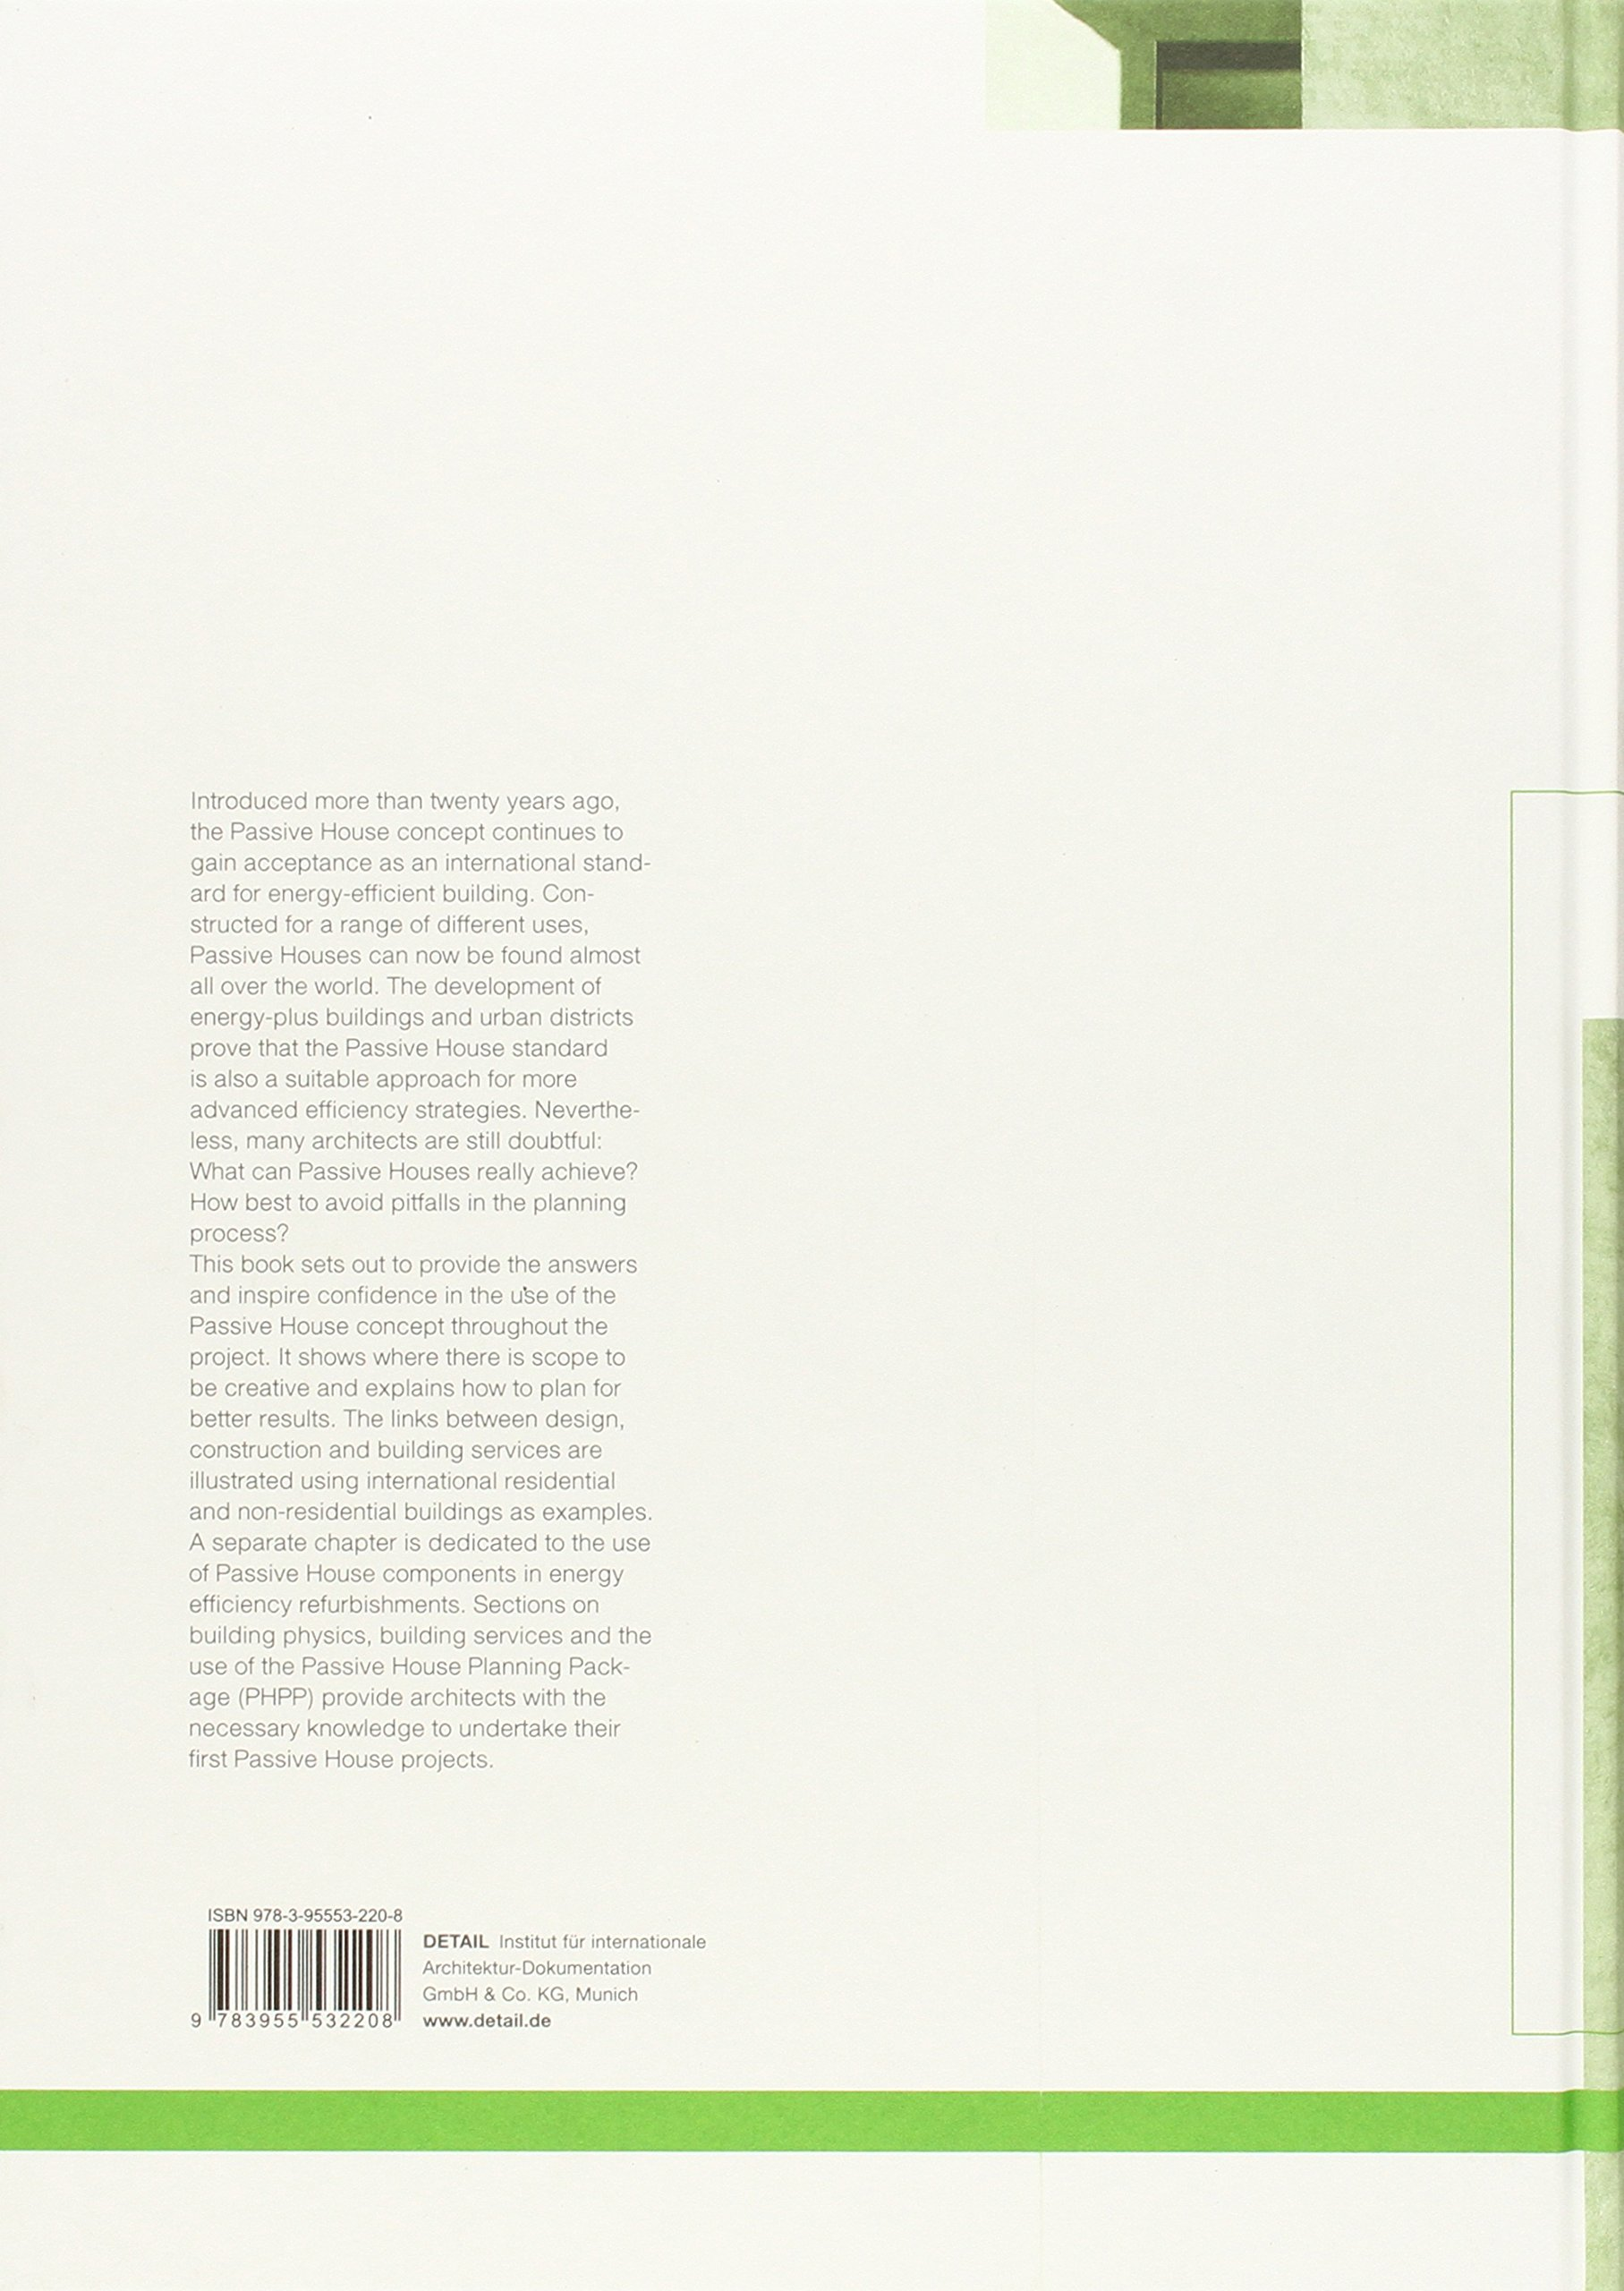 Passive House Design (Edition Detail Green Books)